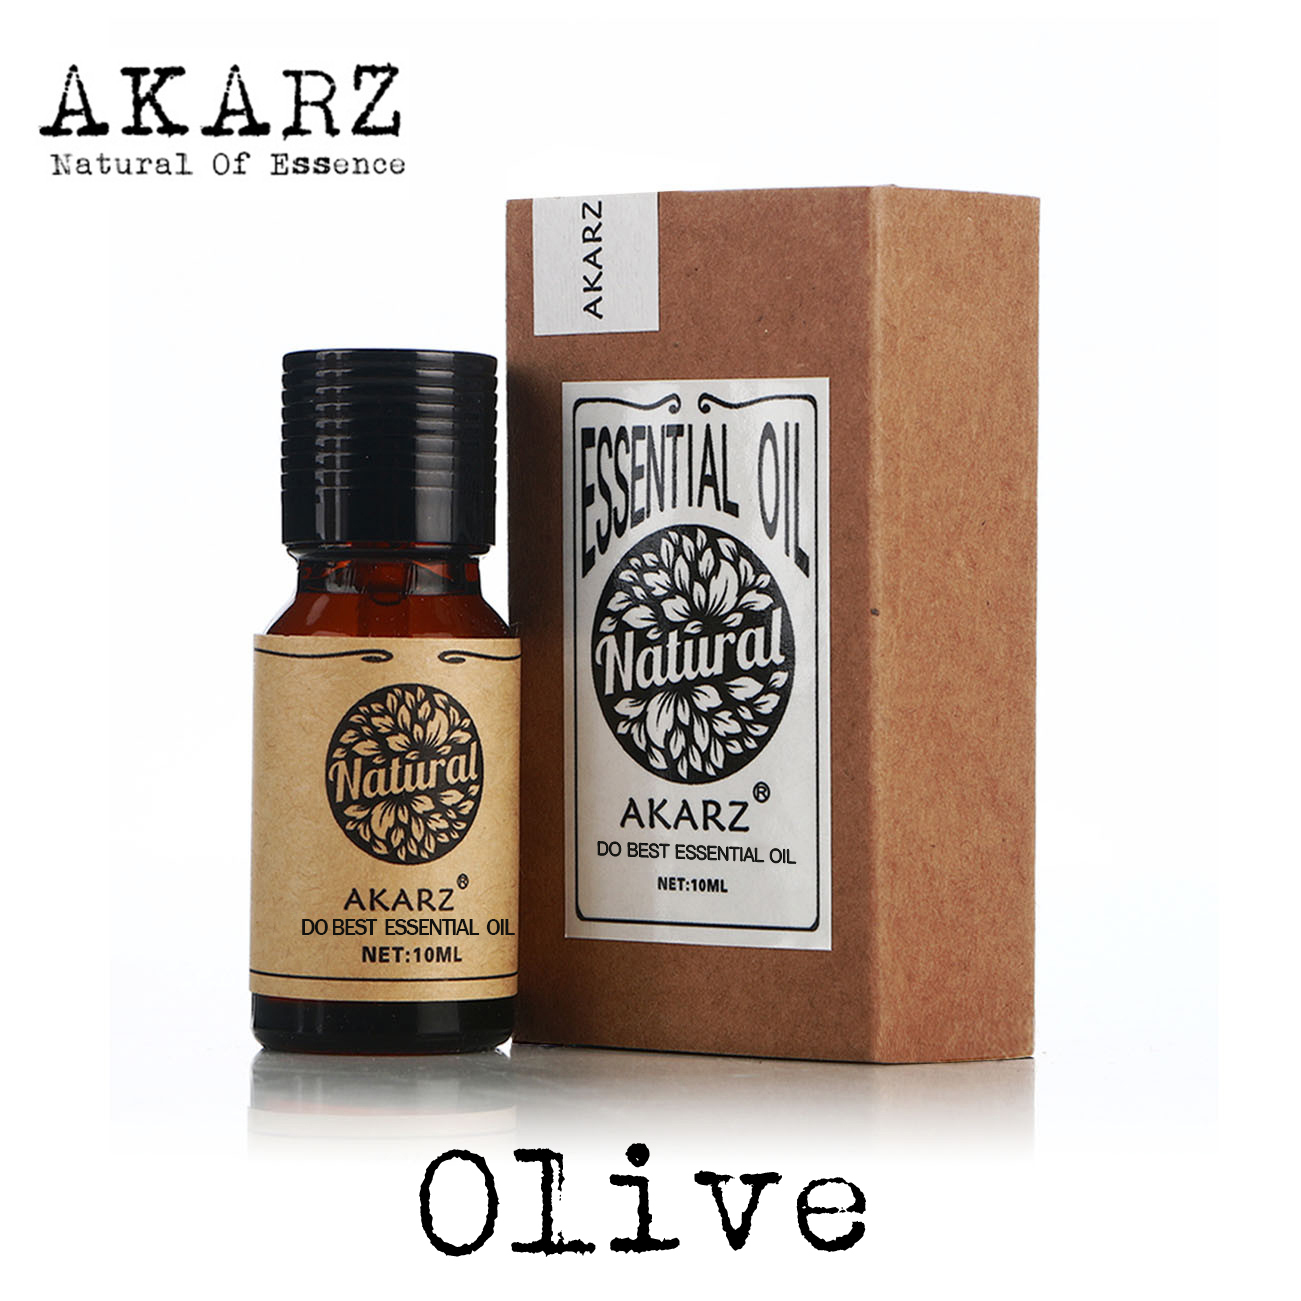 AKARZ Famous brand free shipping natural aromatherapy Olive oil Remove wrinkles Sunscreen Nourish skin Protect hair image